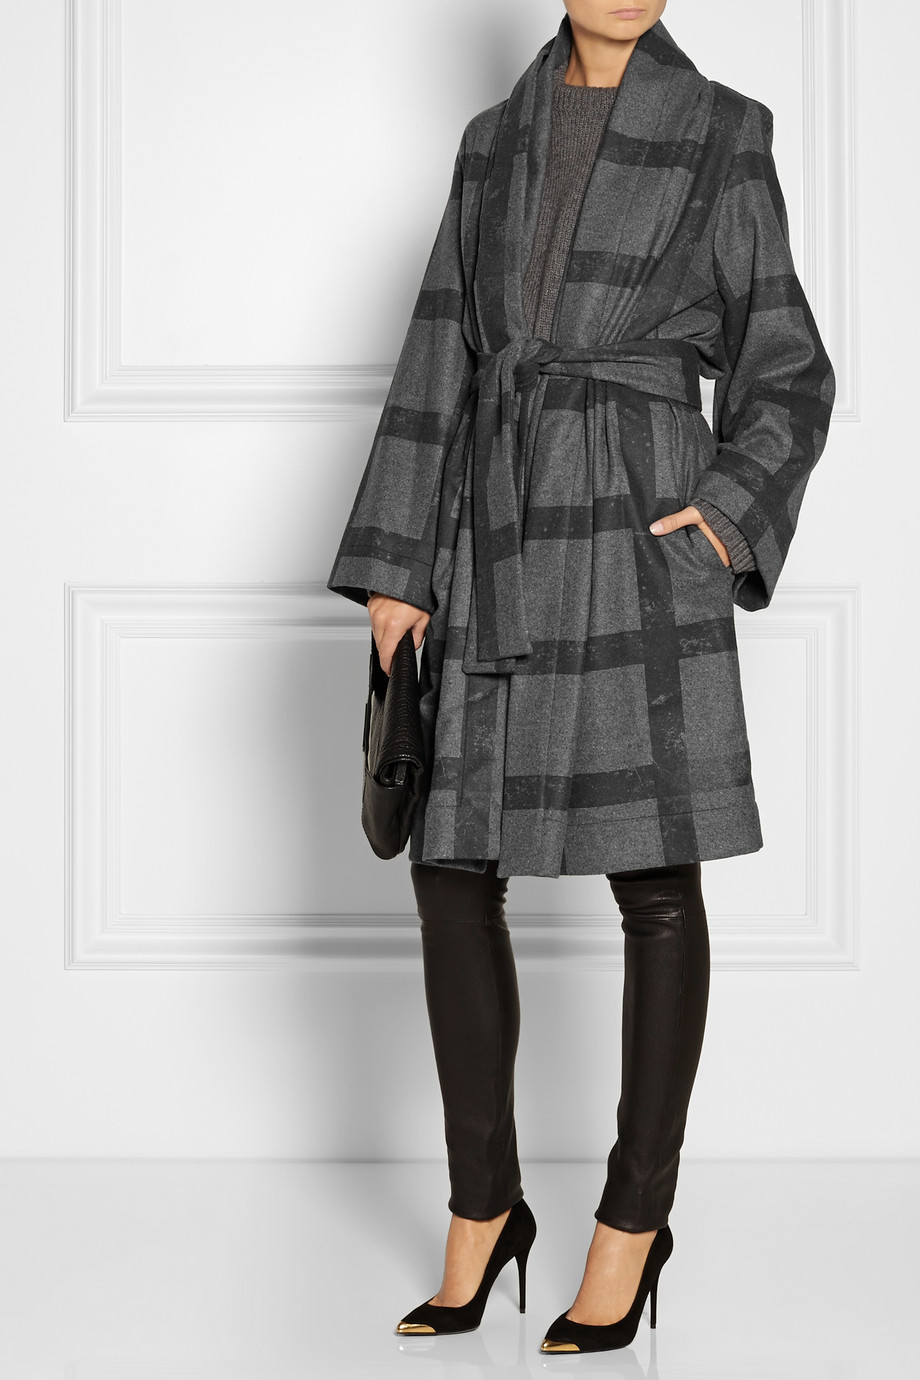 Coats For Winter 2014 (15)